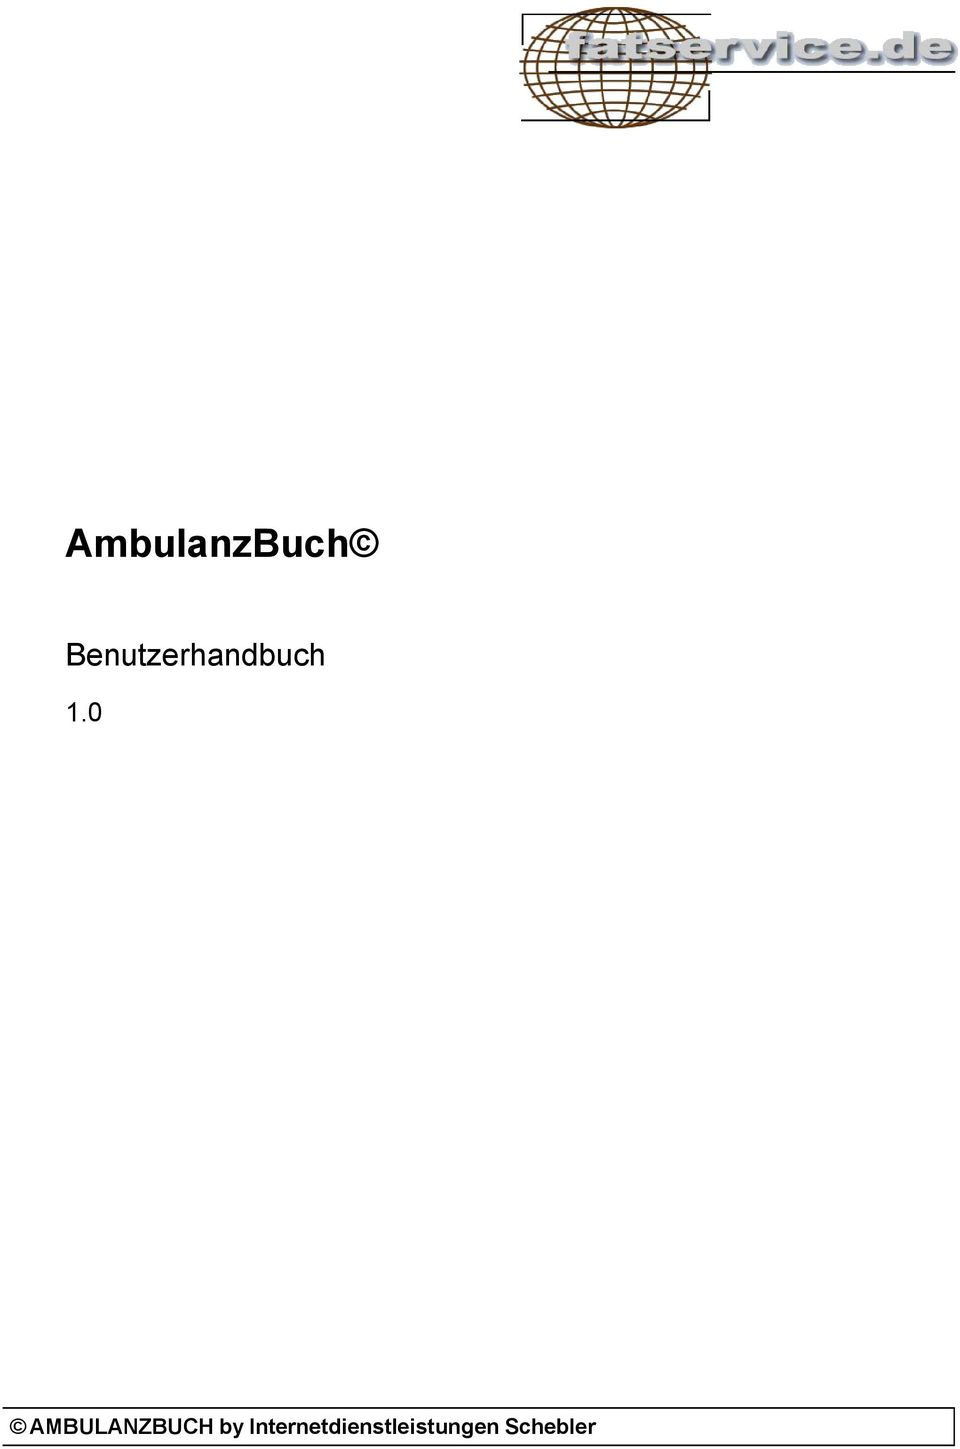 0 AMBULANZBUCH by